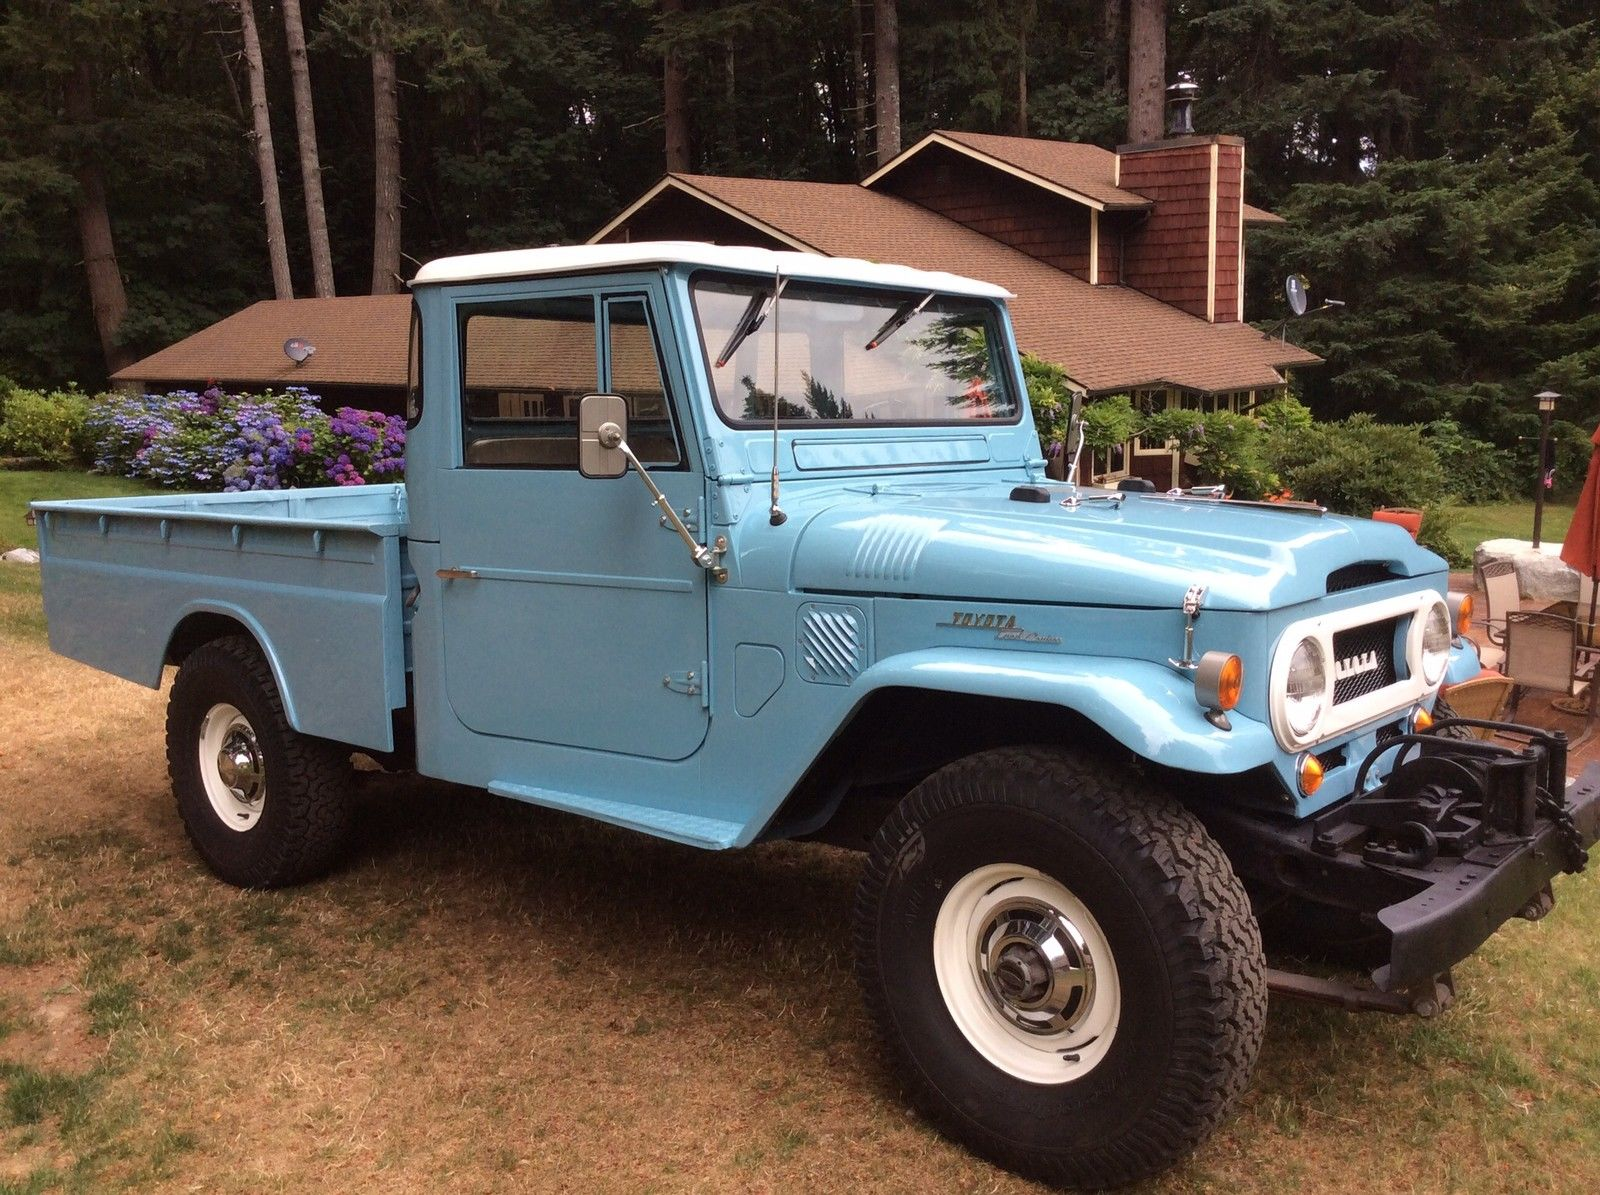 Top Condition Toyota Land Cruiser FJ45 Pickup Waiting for You